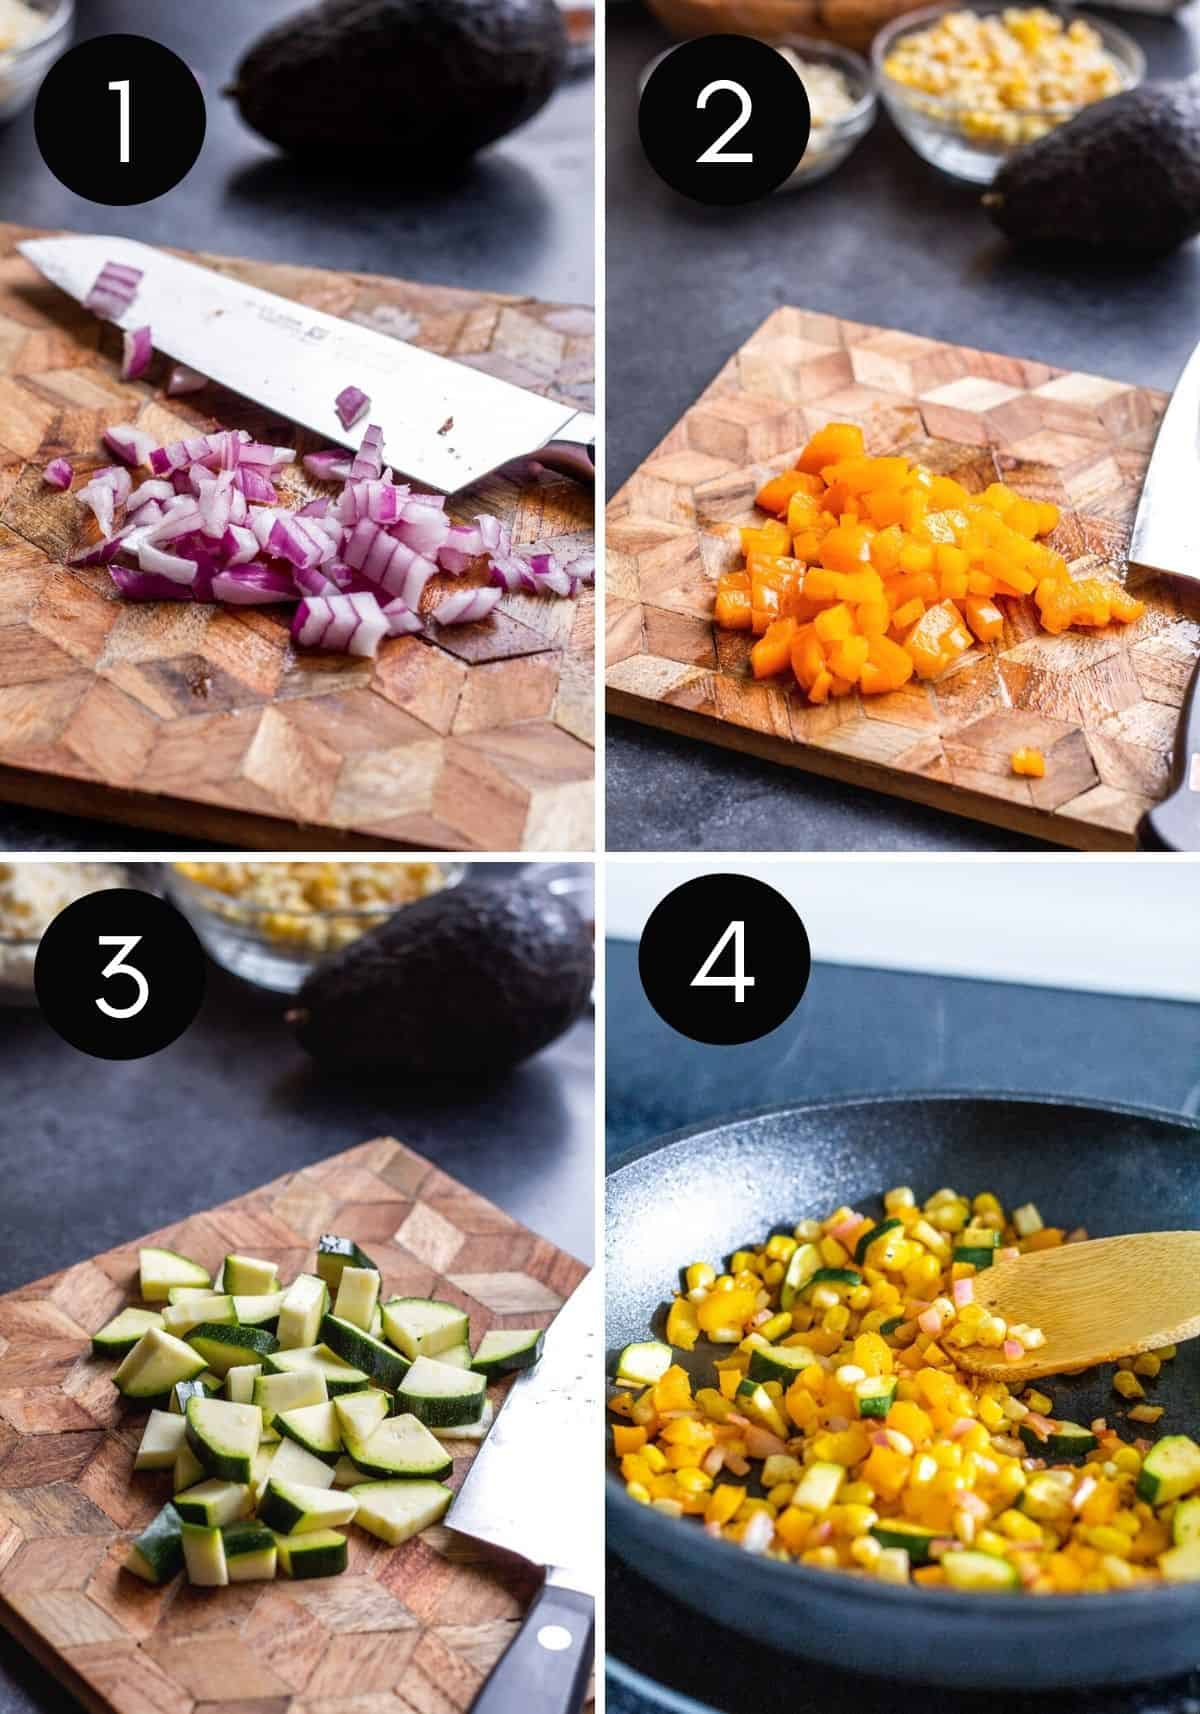 Four prep image collage showing veggies being prepped and cooked in pan.